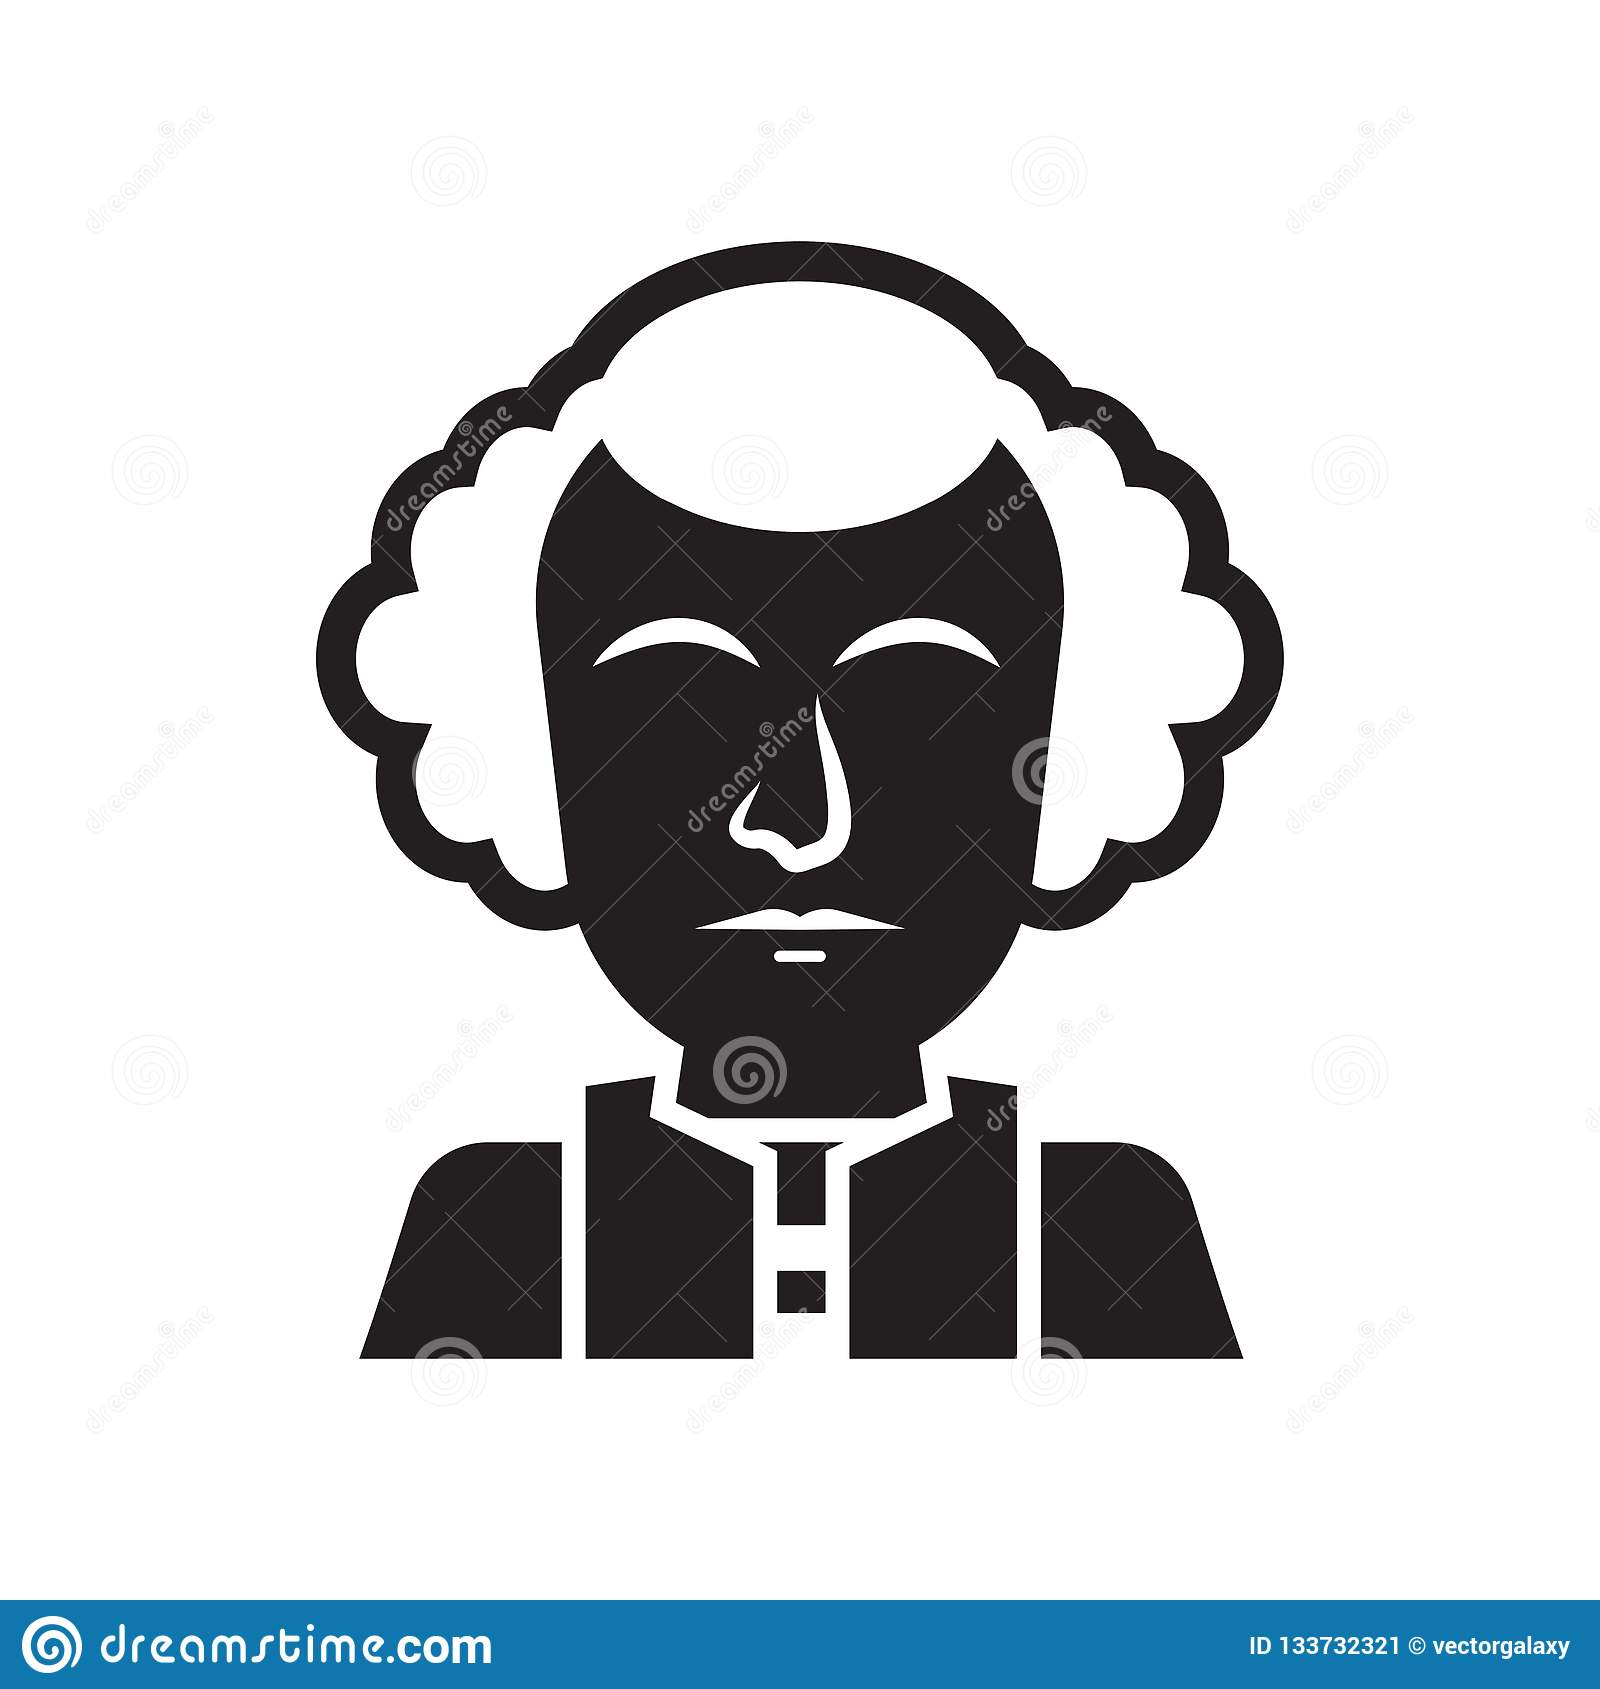 George washington icon vector sign and symbol isolated on white